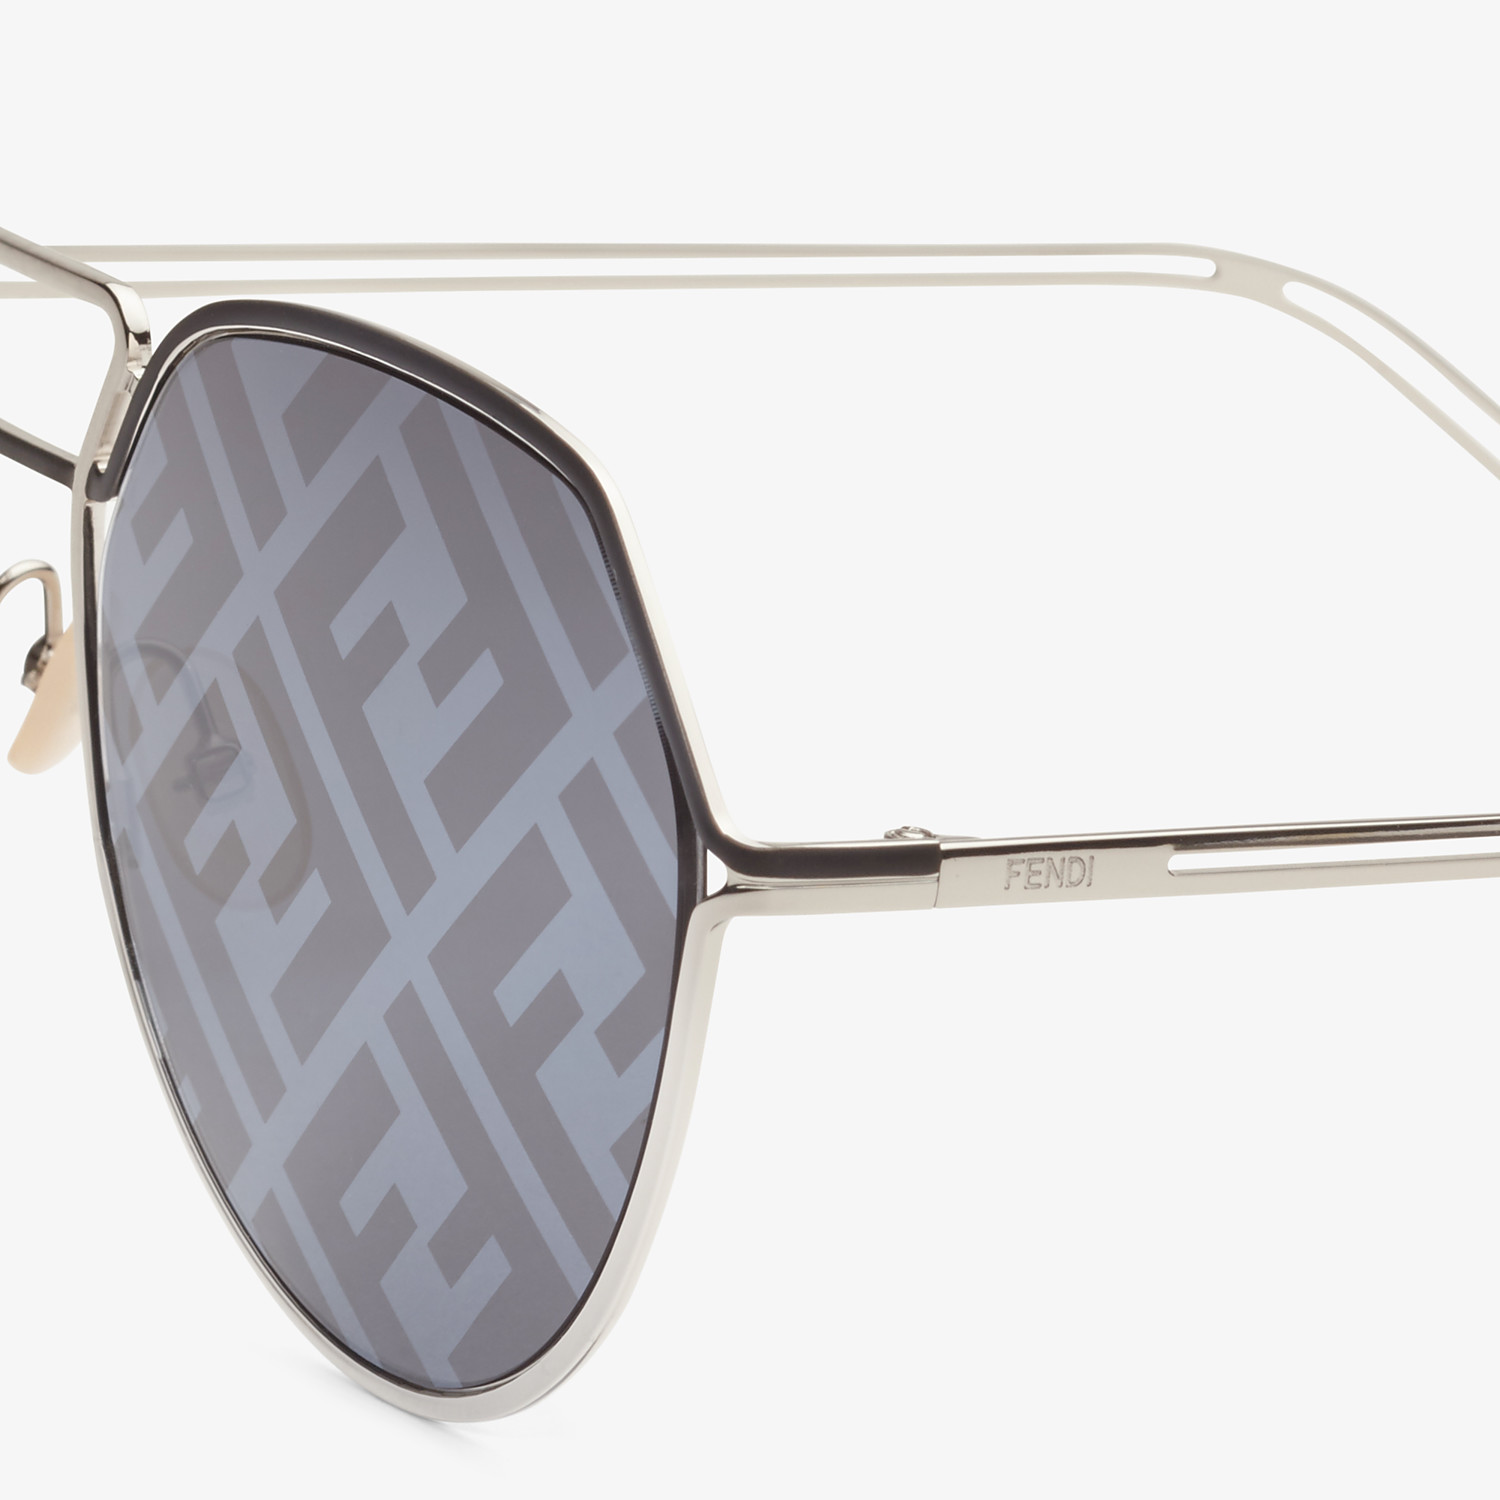 FENDI FENDI GRID - Black and palladium sunglasses - view 3 detail